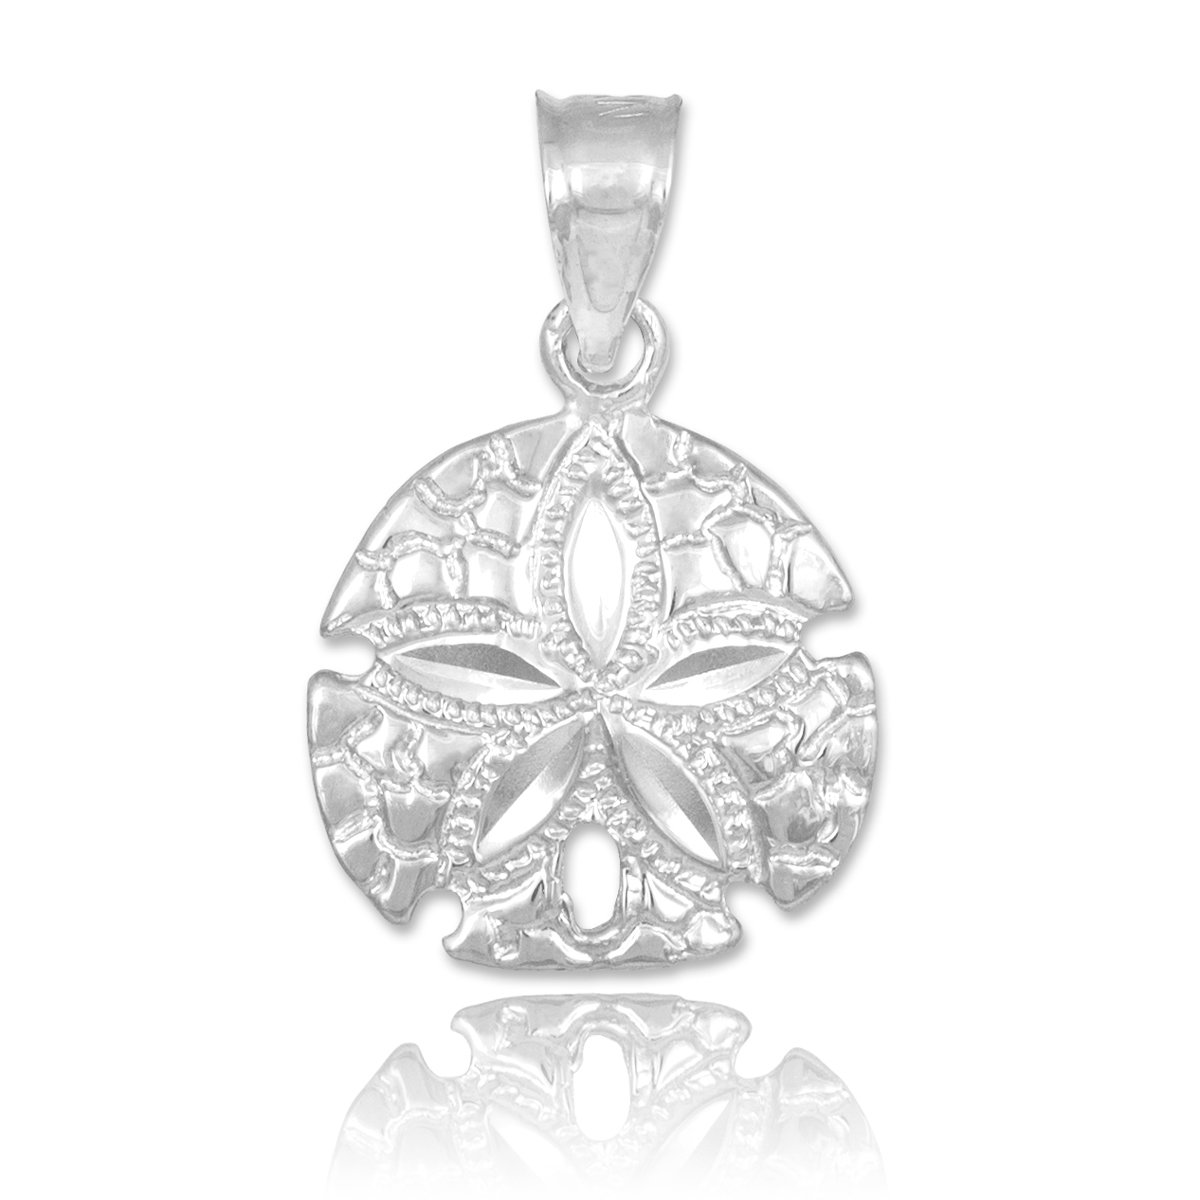 18 925 Sterling Silver Sea Star Sand Dollar Charm Pendant Necklace